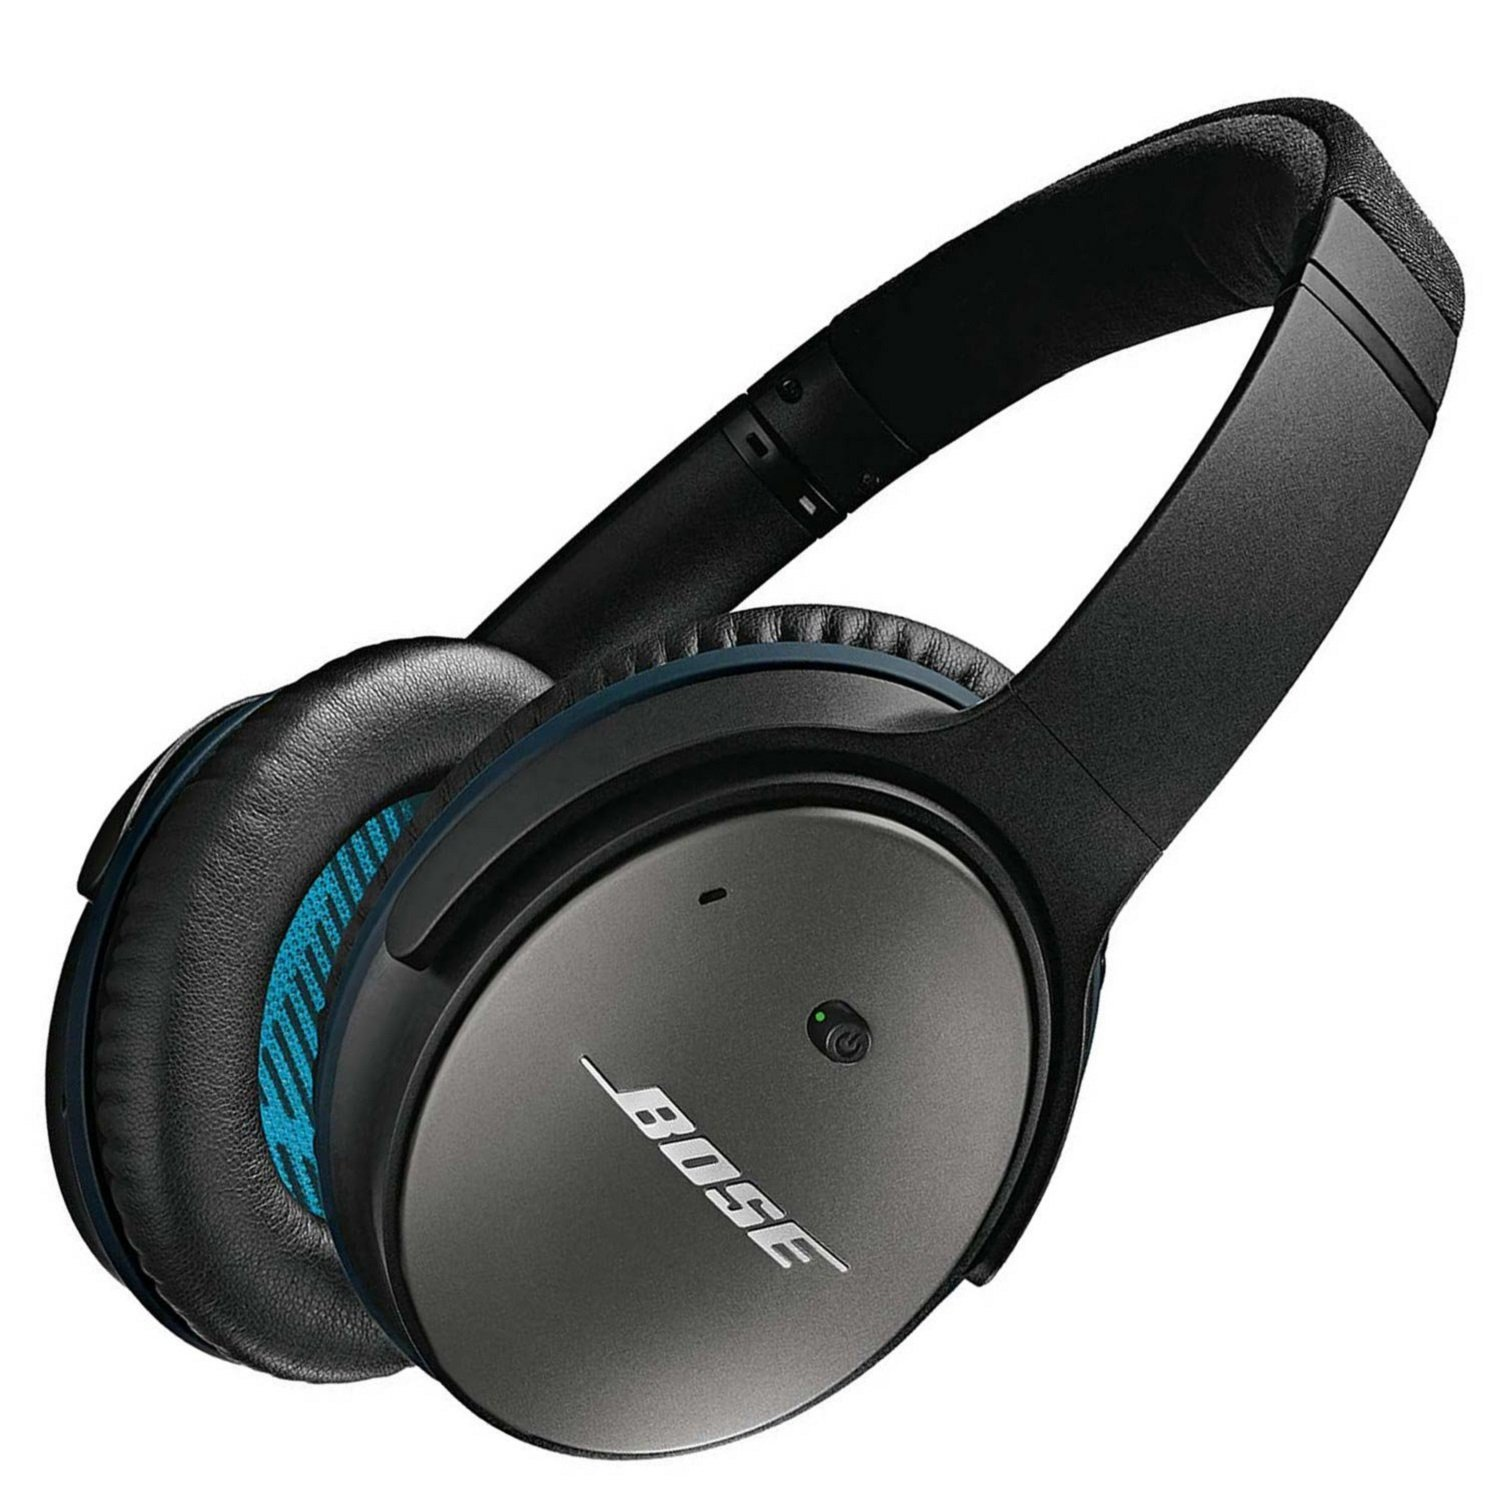 Bose QuietComfort 25 Acoustic Noise Cancelling Headphones for Apple devices - Black (wired, 3.5mm) by Bose (Image #2)